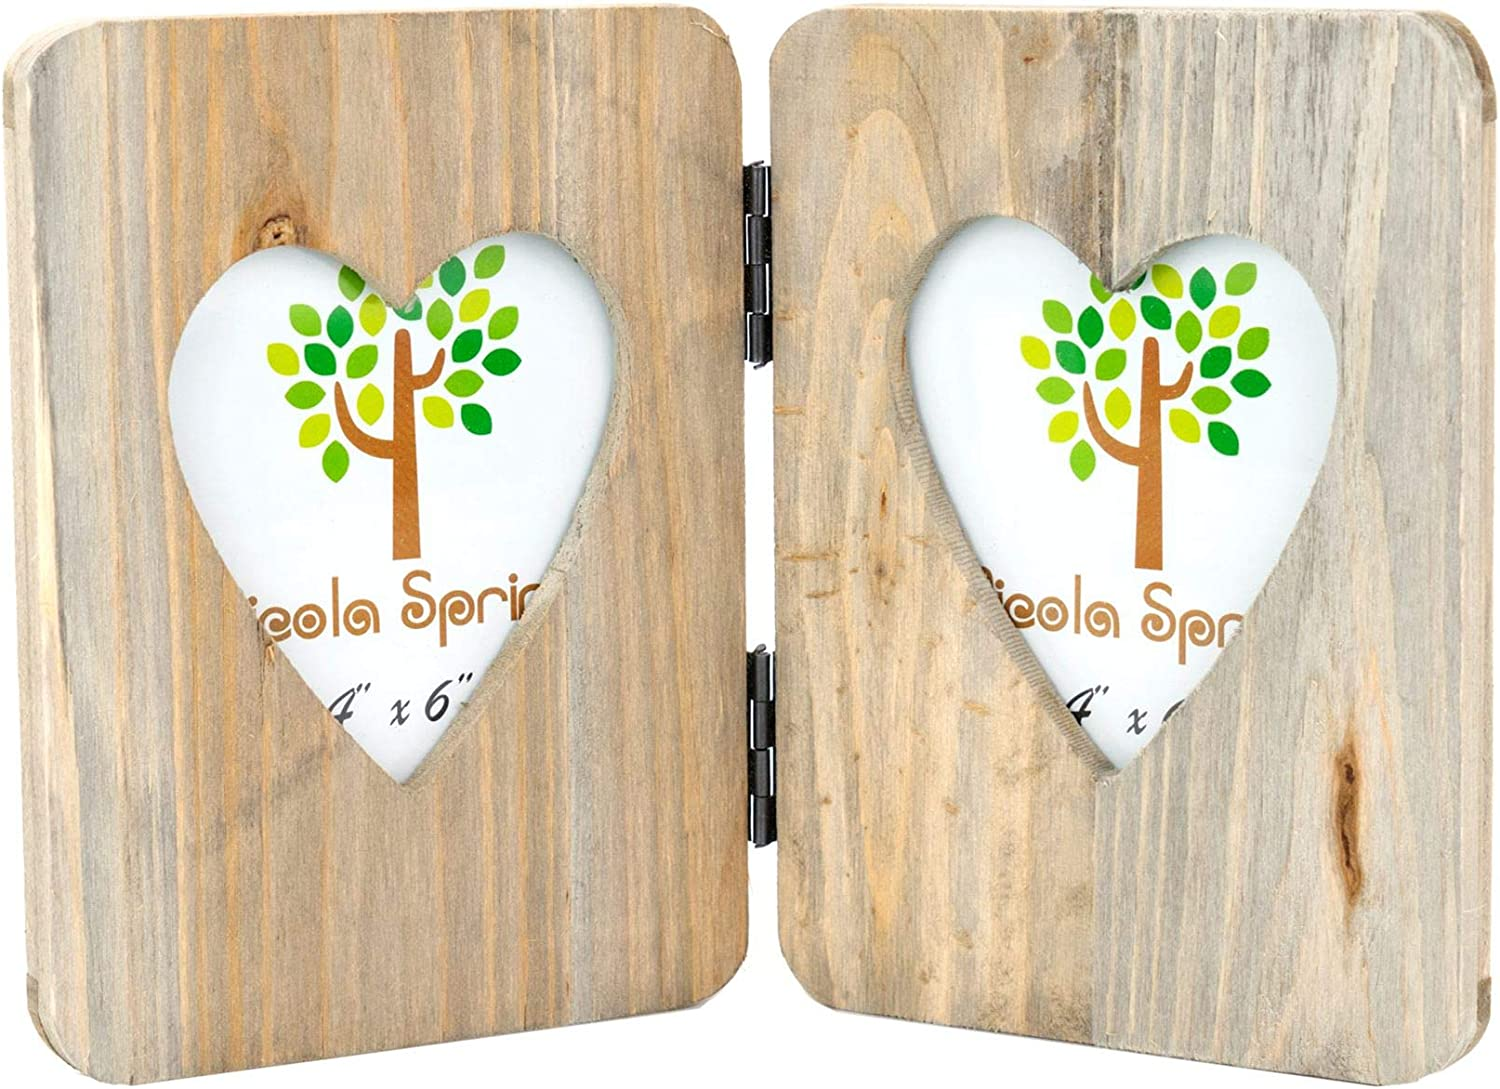 Nicola Spring 4 x 6 Wooden Freestanding Folding Multi 2 Photo Picture Frame - Heart Shaped Aperture - Fits 4x6 Photos - Natural